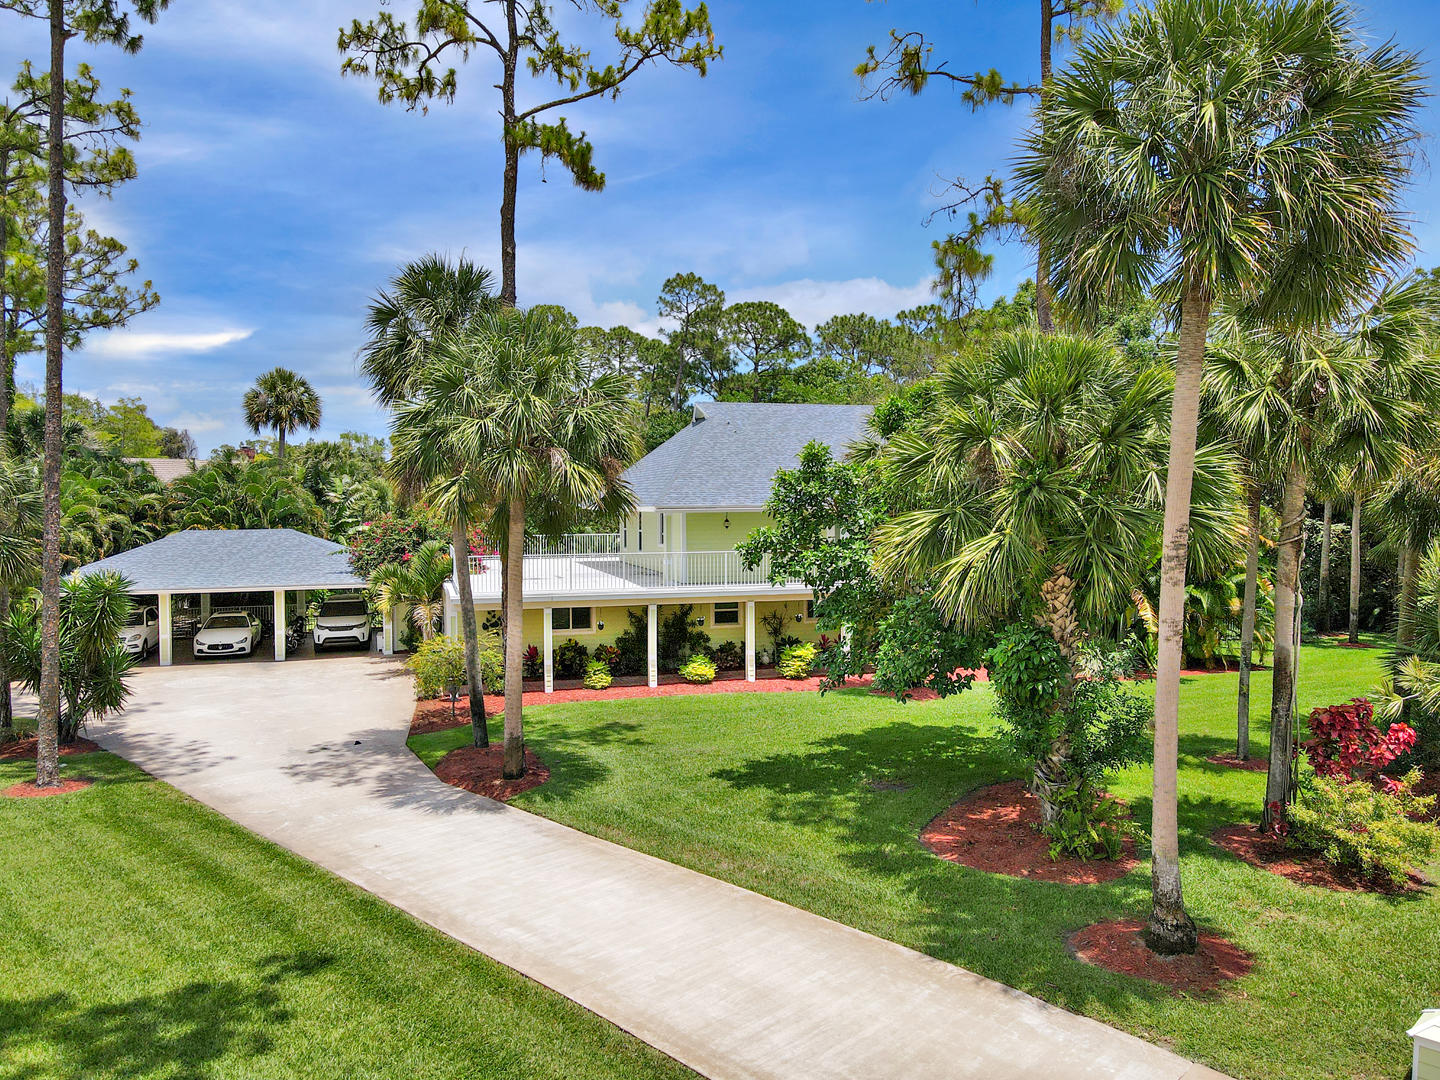 8623  Thousand Pines Court  For Sale 10715112, FL